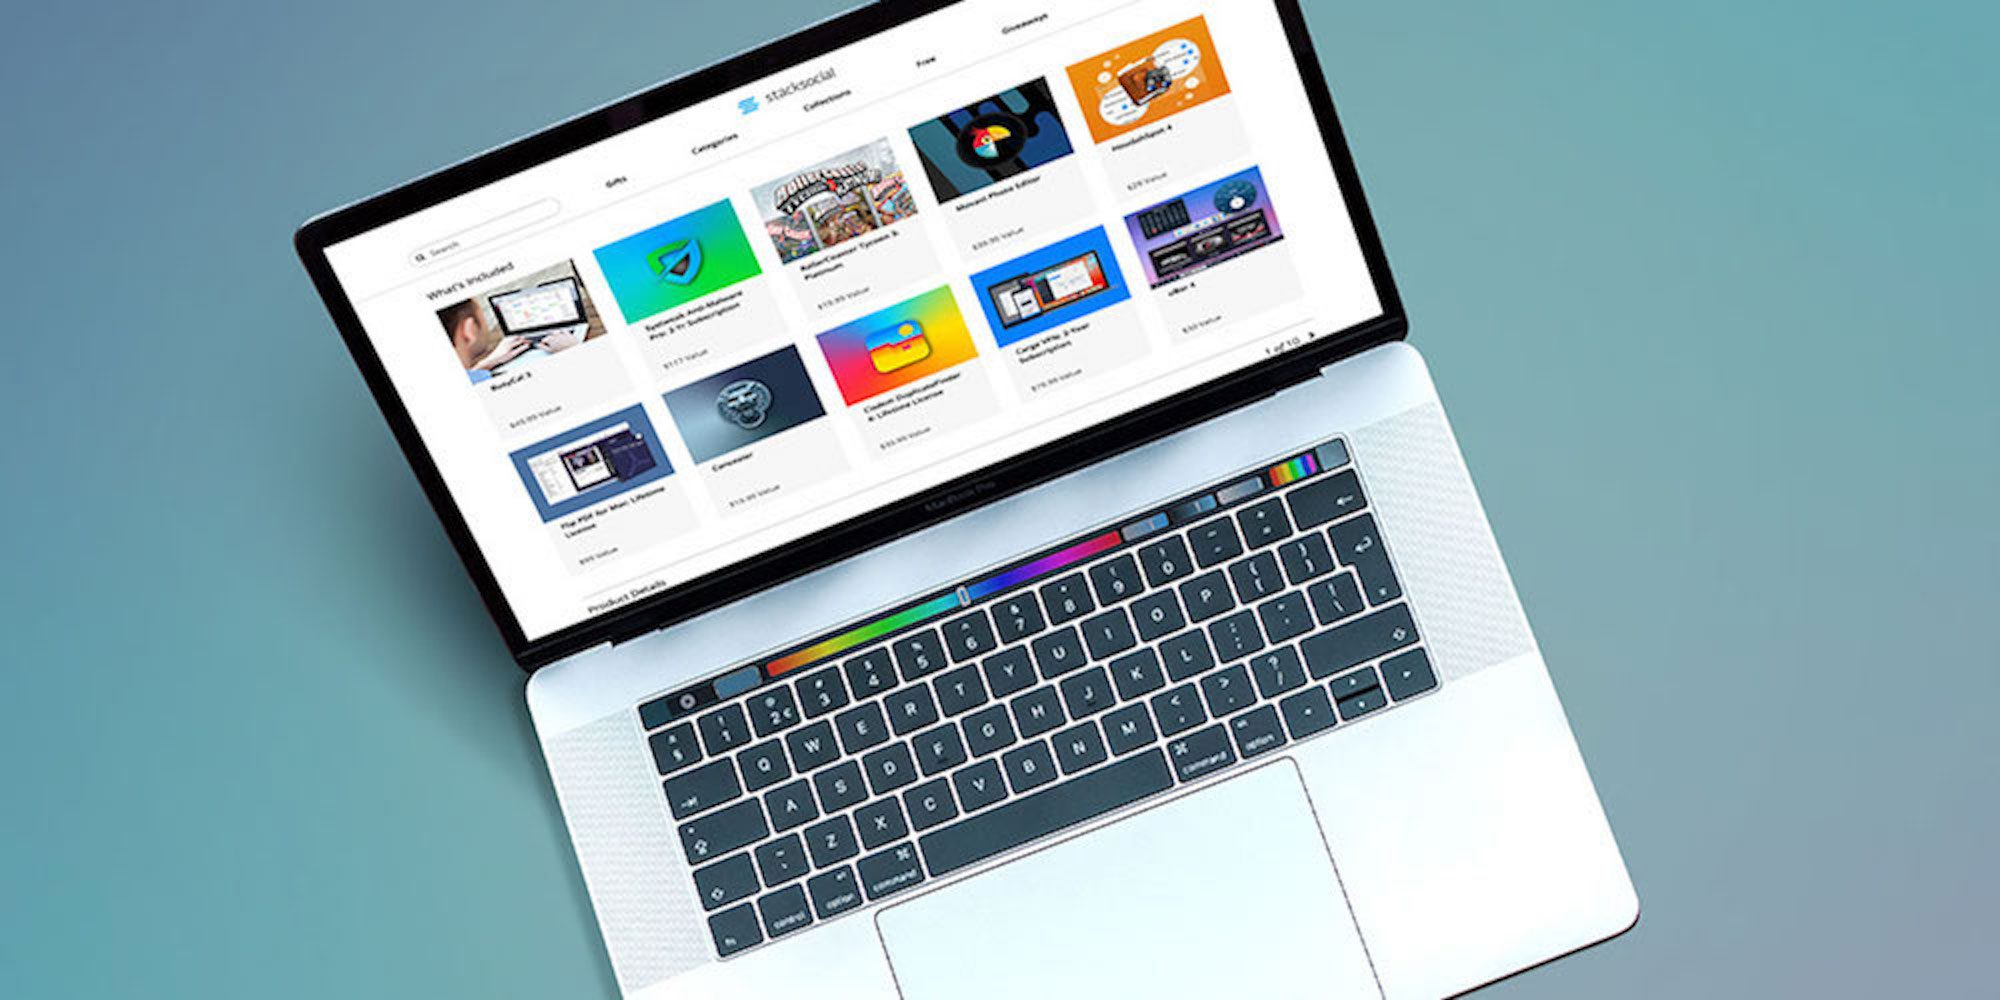 The 2018 Mac Essentials Bundle offers 10 elite apps: BusyCal, HoudahSpot, more for $15